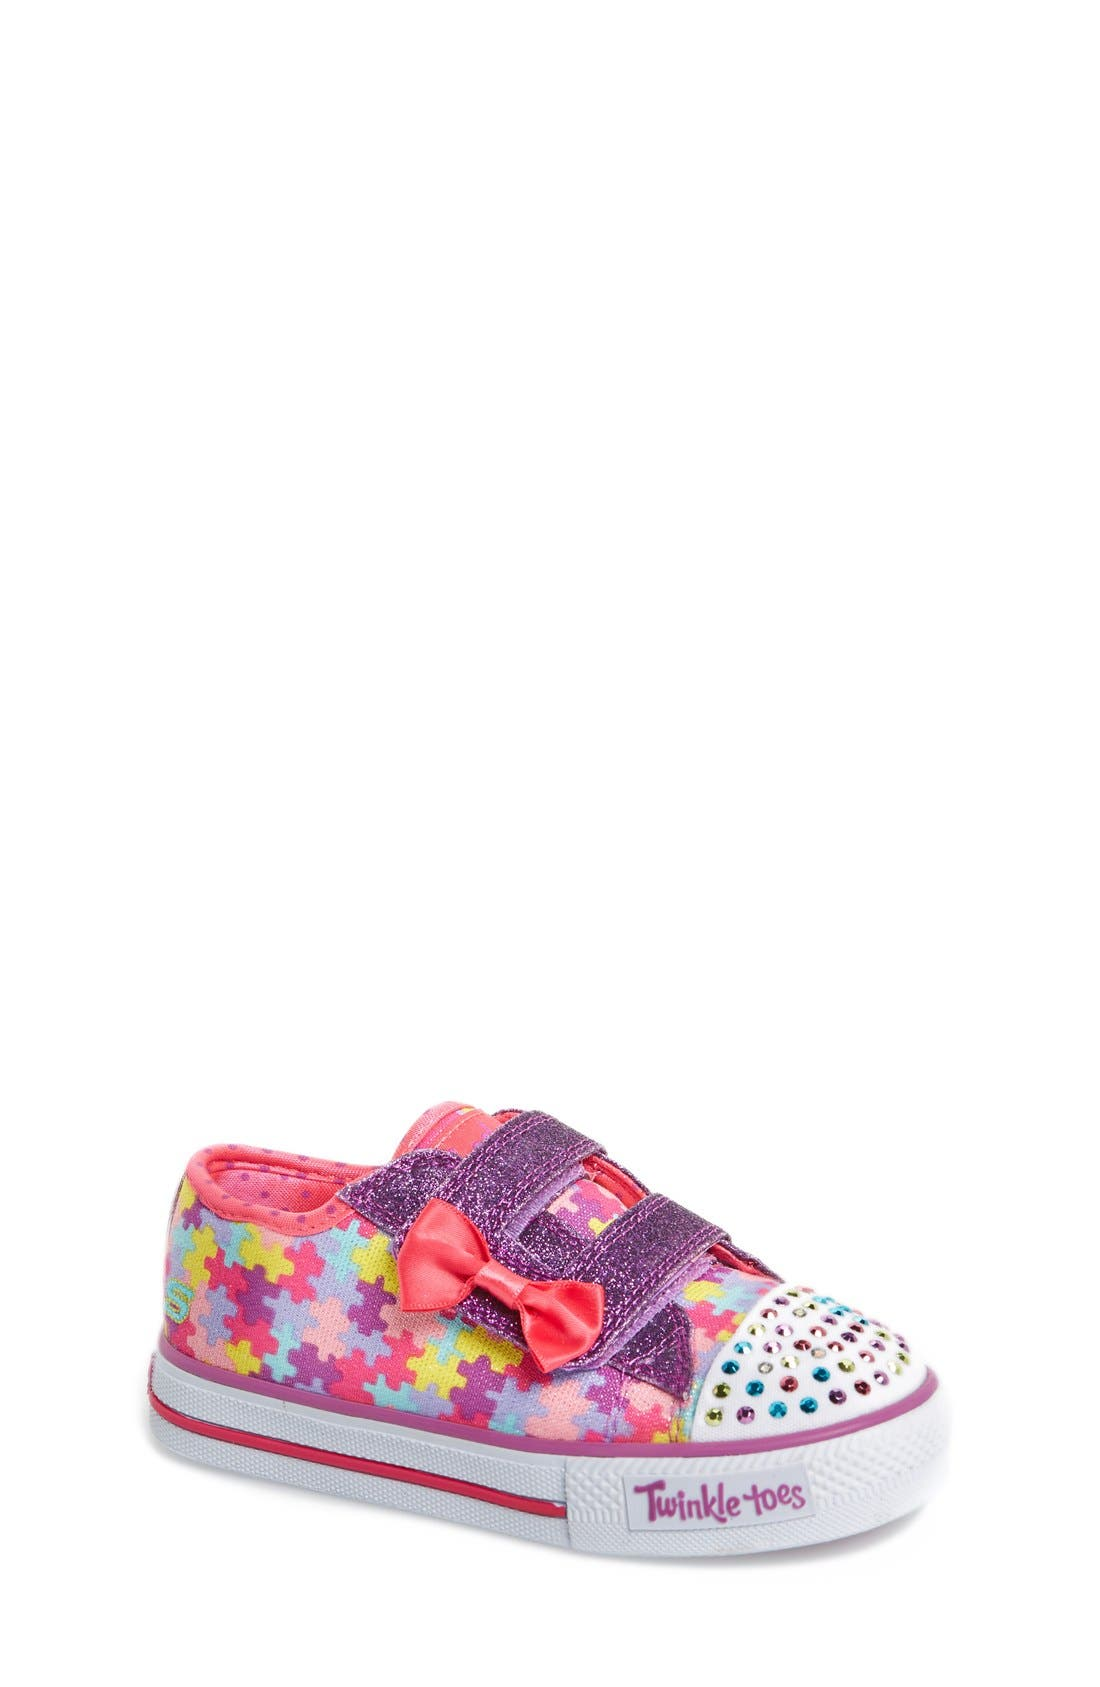 Alternate Image 1 Selected - SKECHERS 'Twinkle Toes - Shuffles Jumpin Jigsaw' Light-Up Sneaker (Toddler)